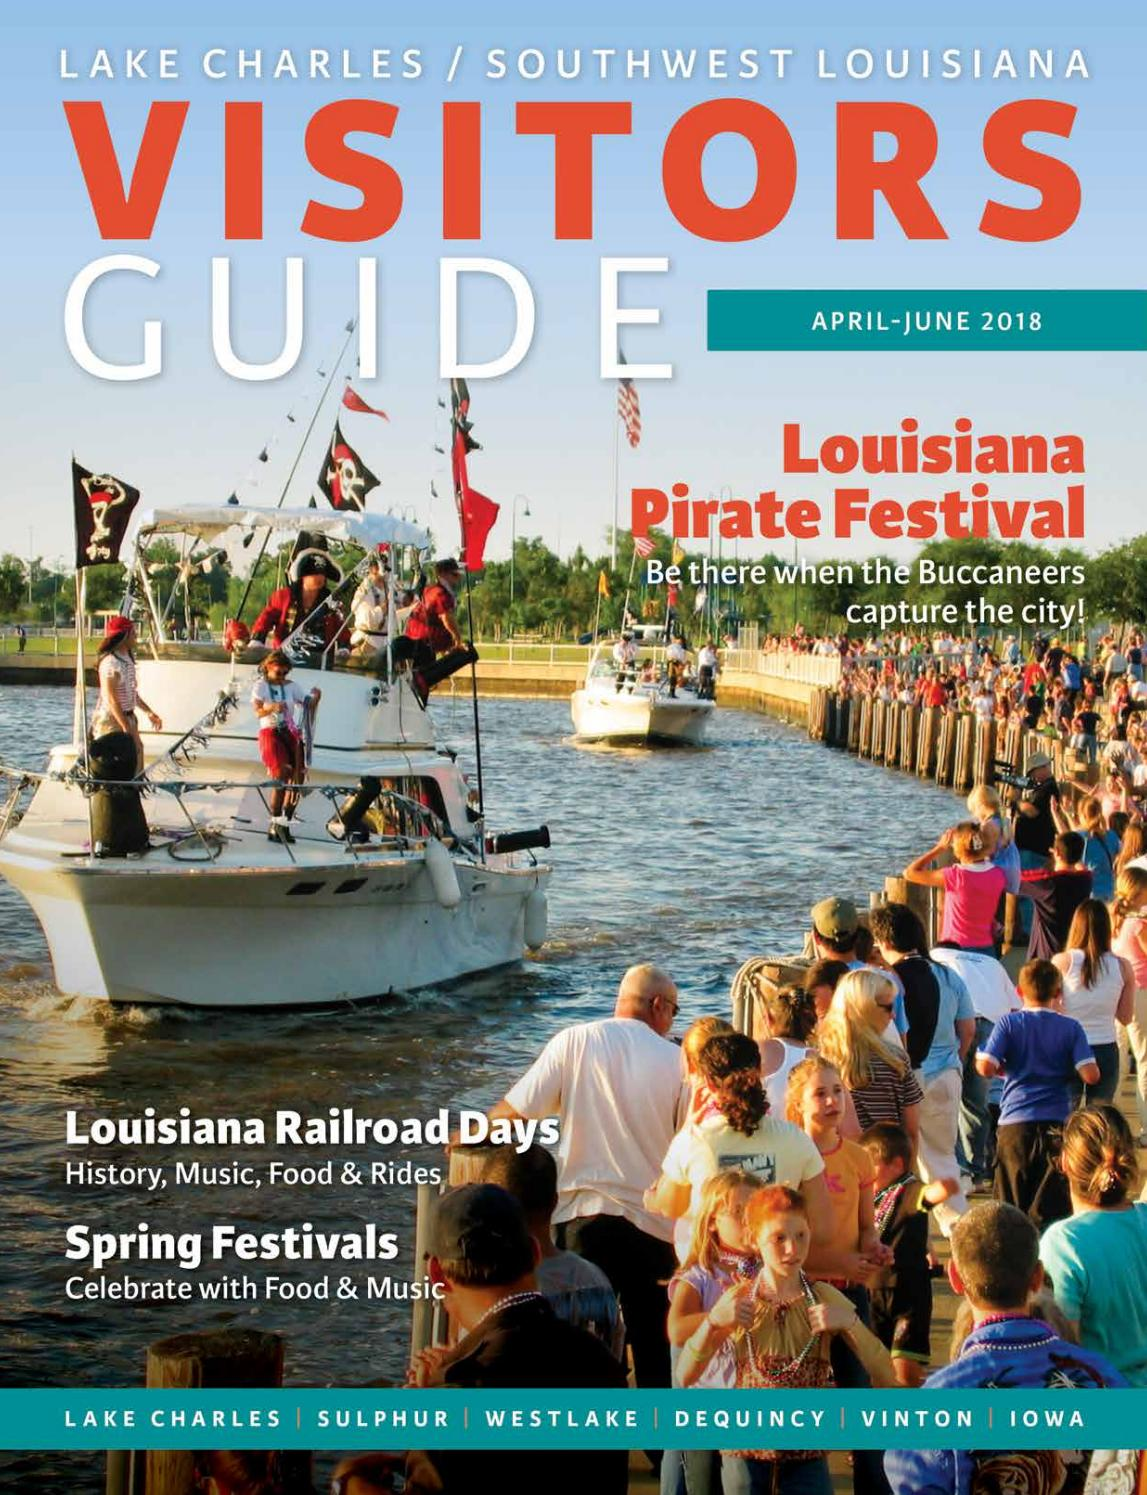 Lake Charles Southwest Louisiana Visitor Guide April June 2018 By Visit